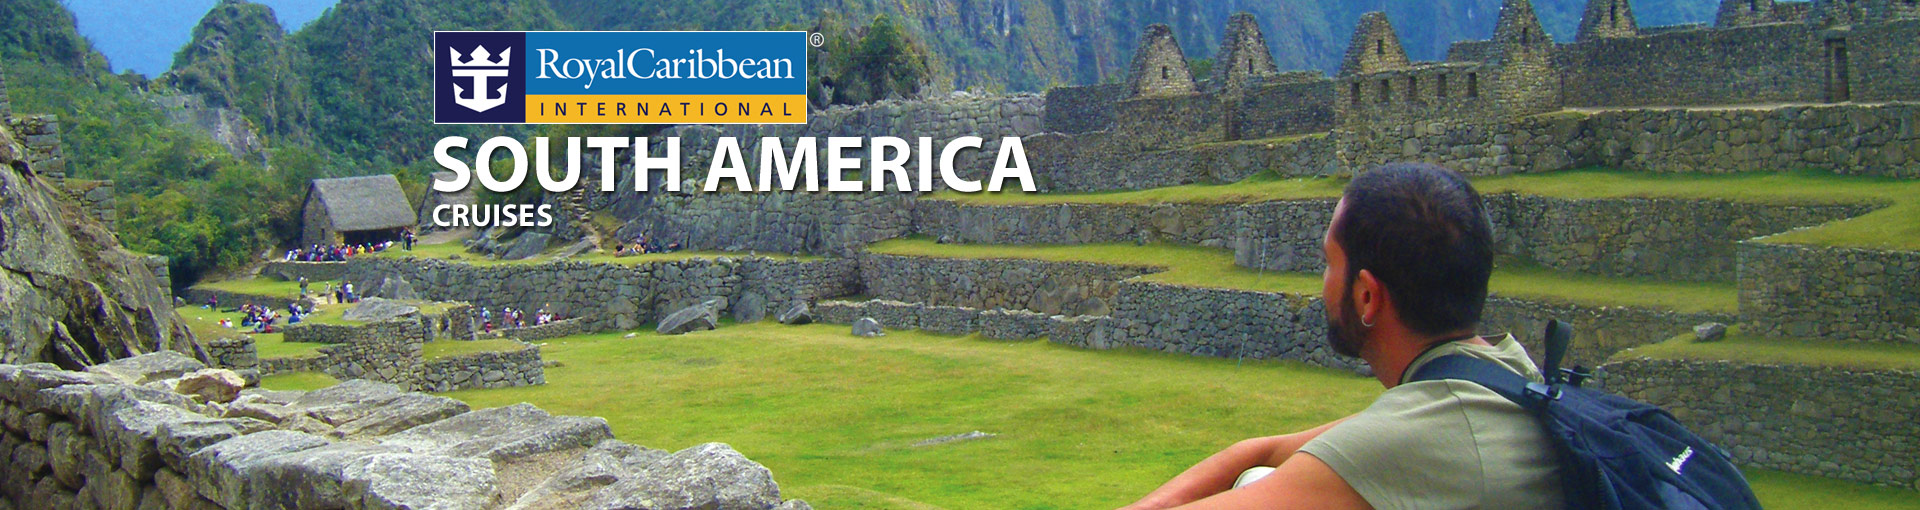 Royal Caribbean South America Cruises